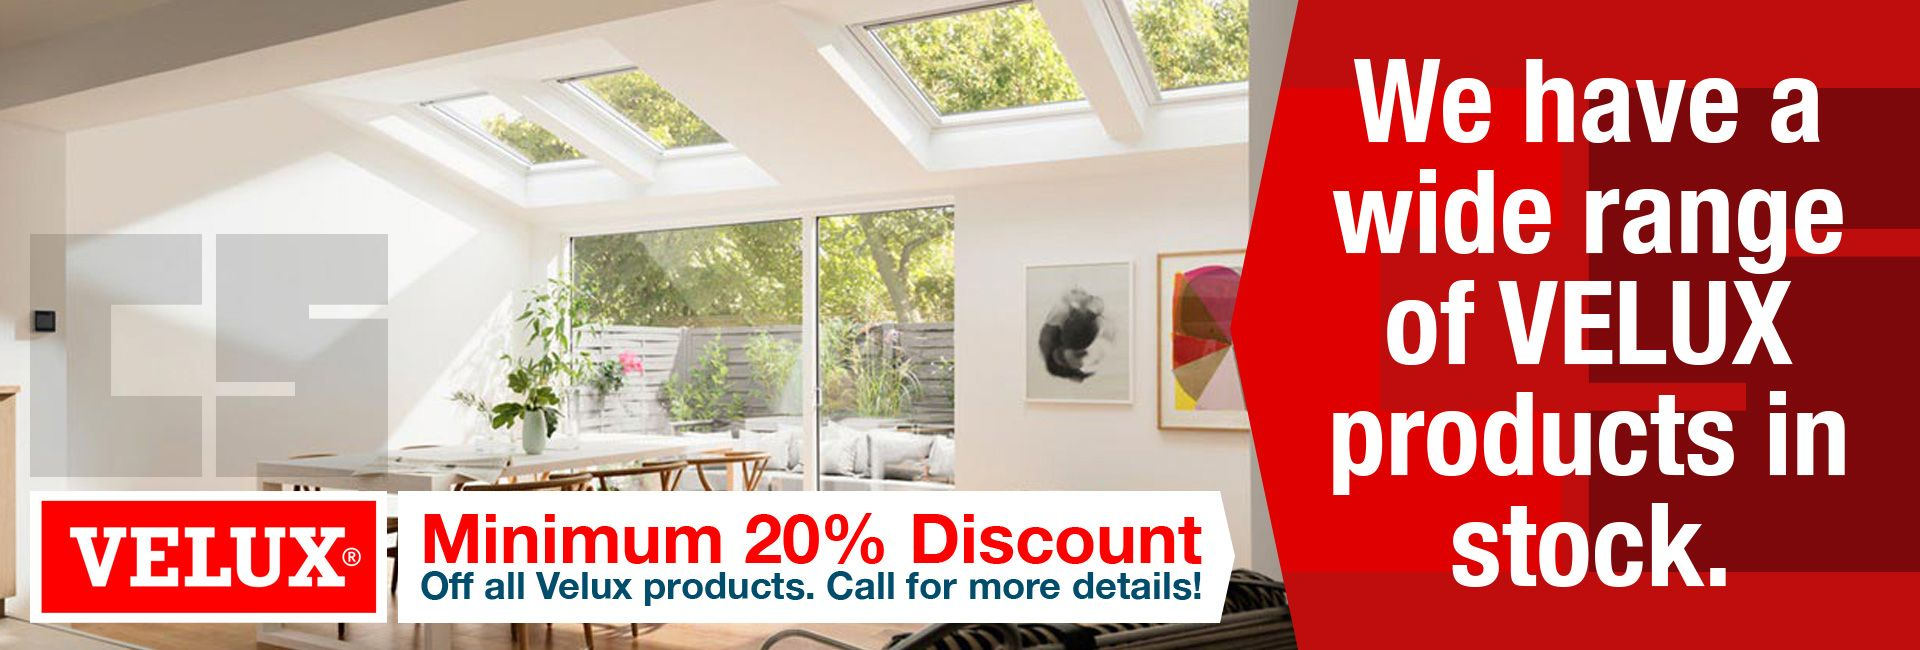 We have a wide range of Velux products in stock at Civil Solutions Newton Abbot, Devon.